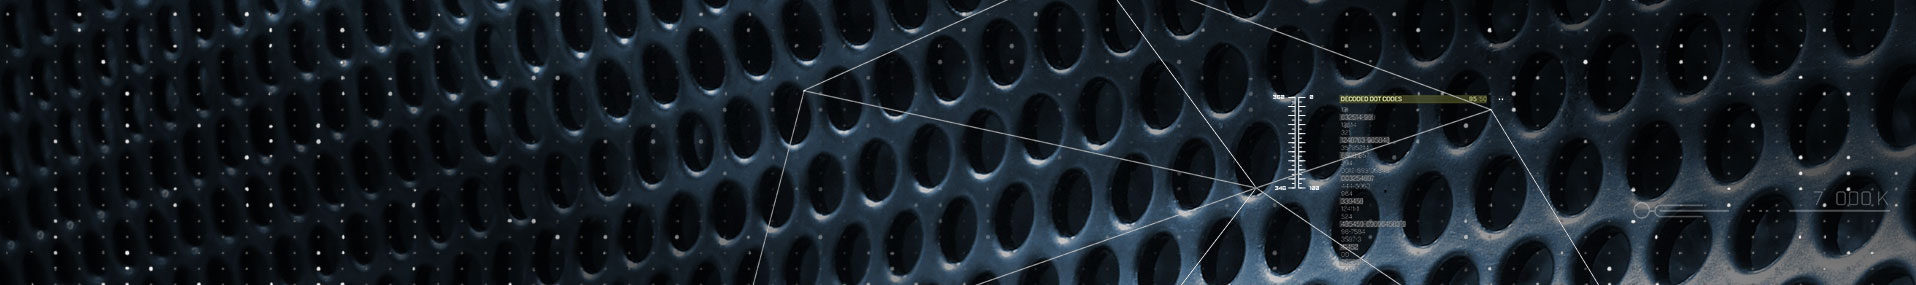 data over perforated circle pattern